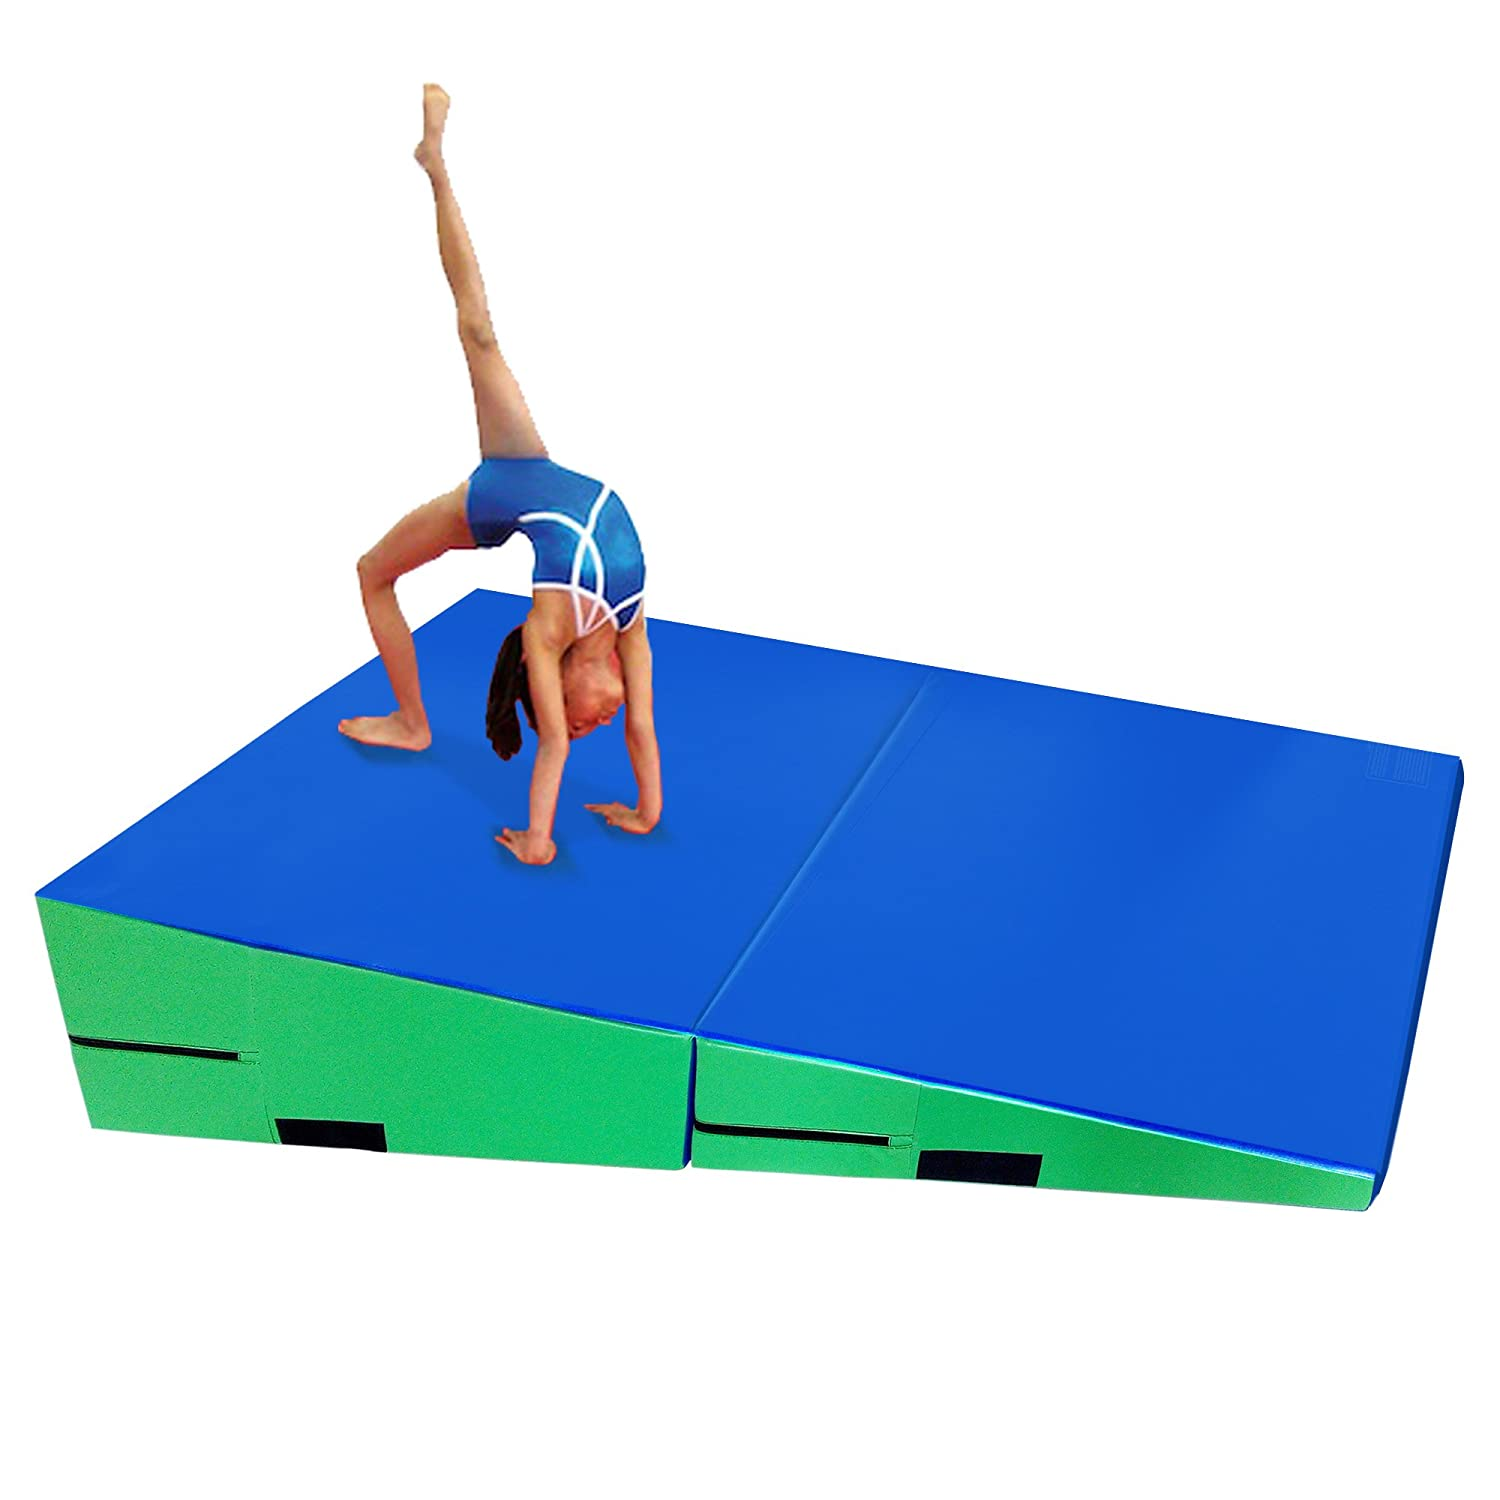 pump home floor itm mats for mat tumbling gym track s popular inflatable gymnastics air